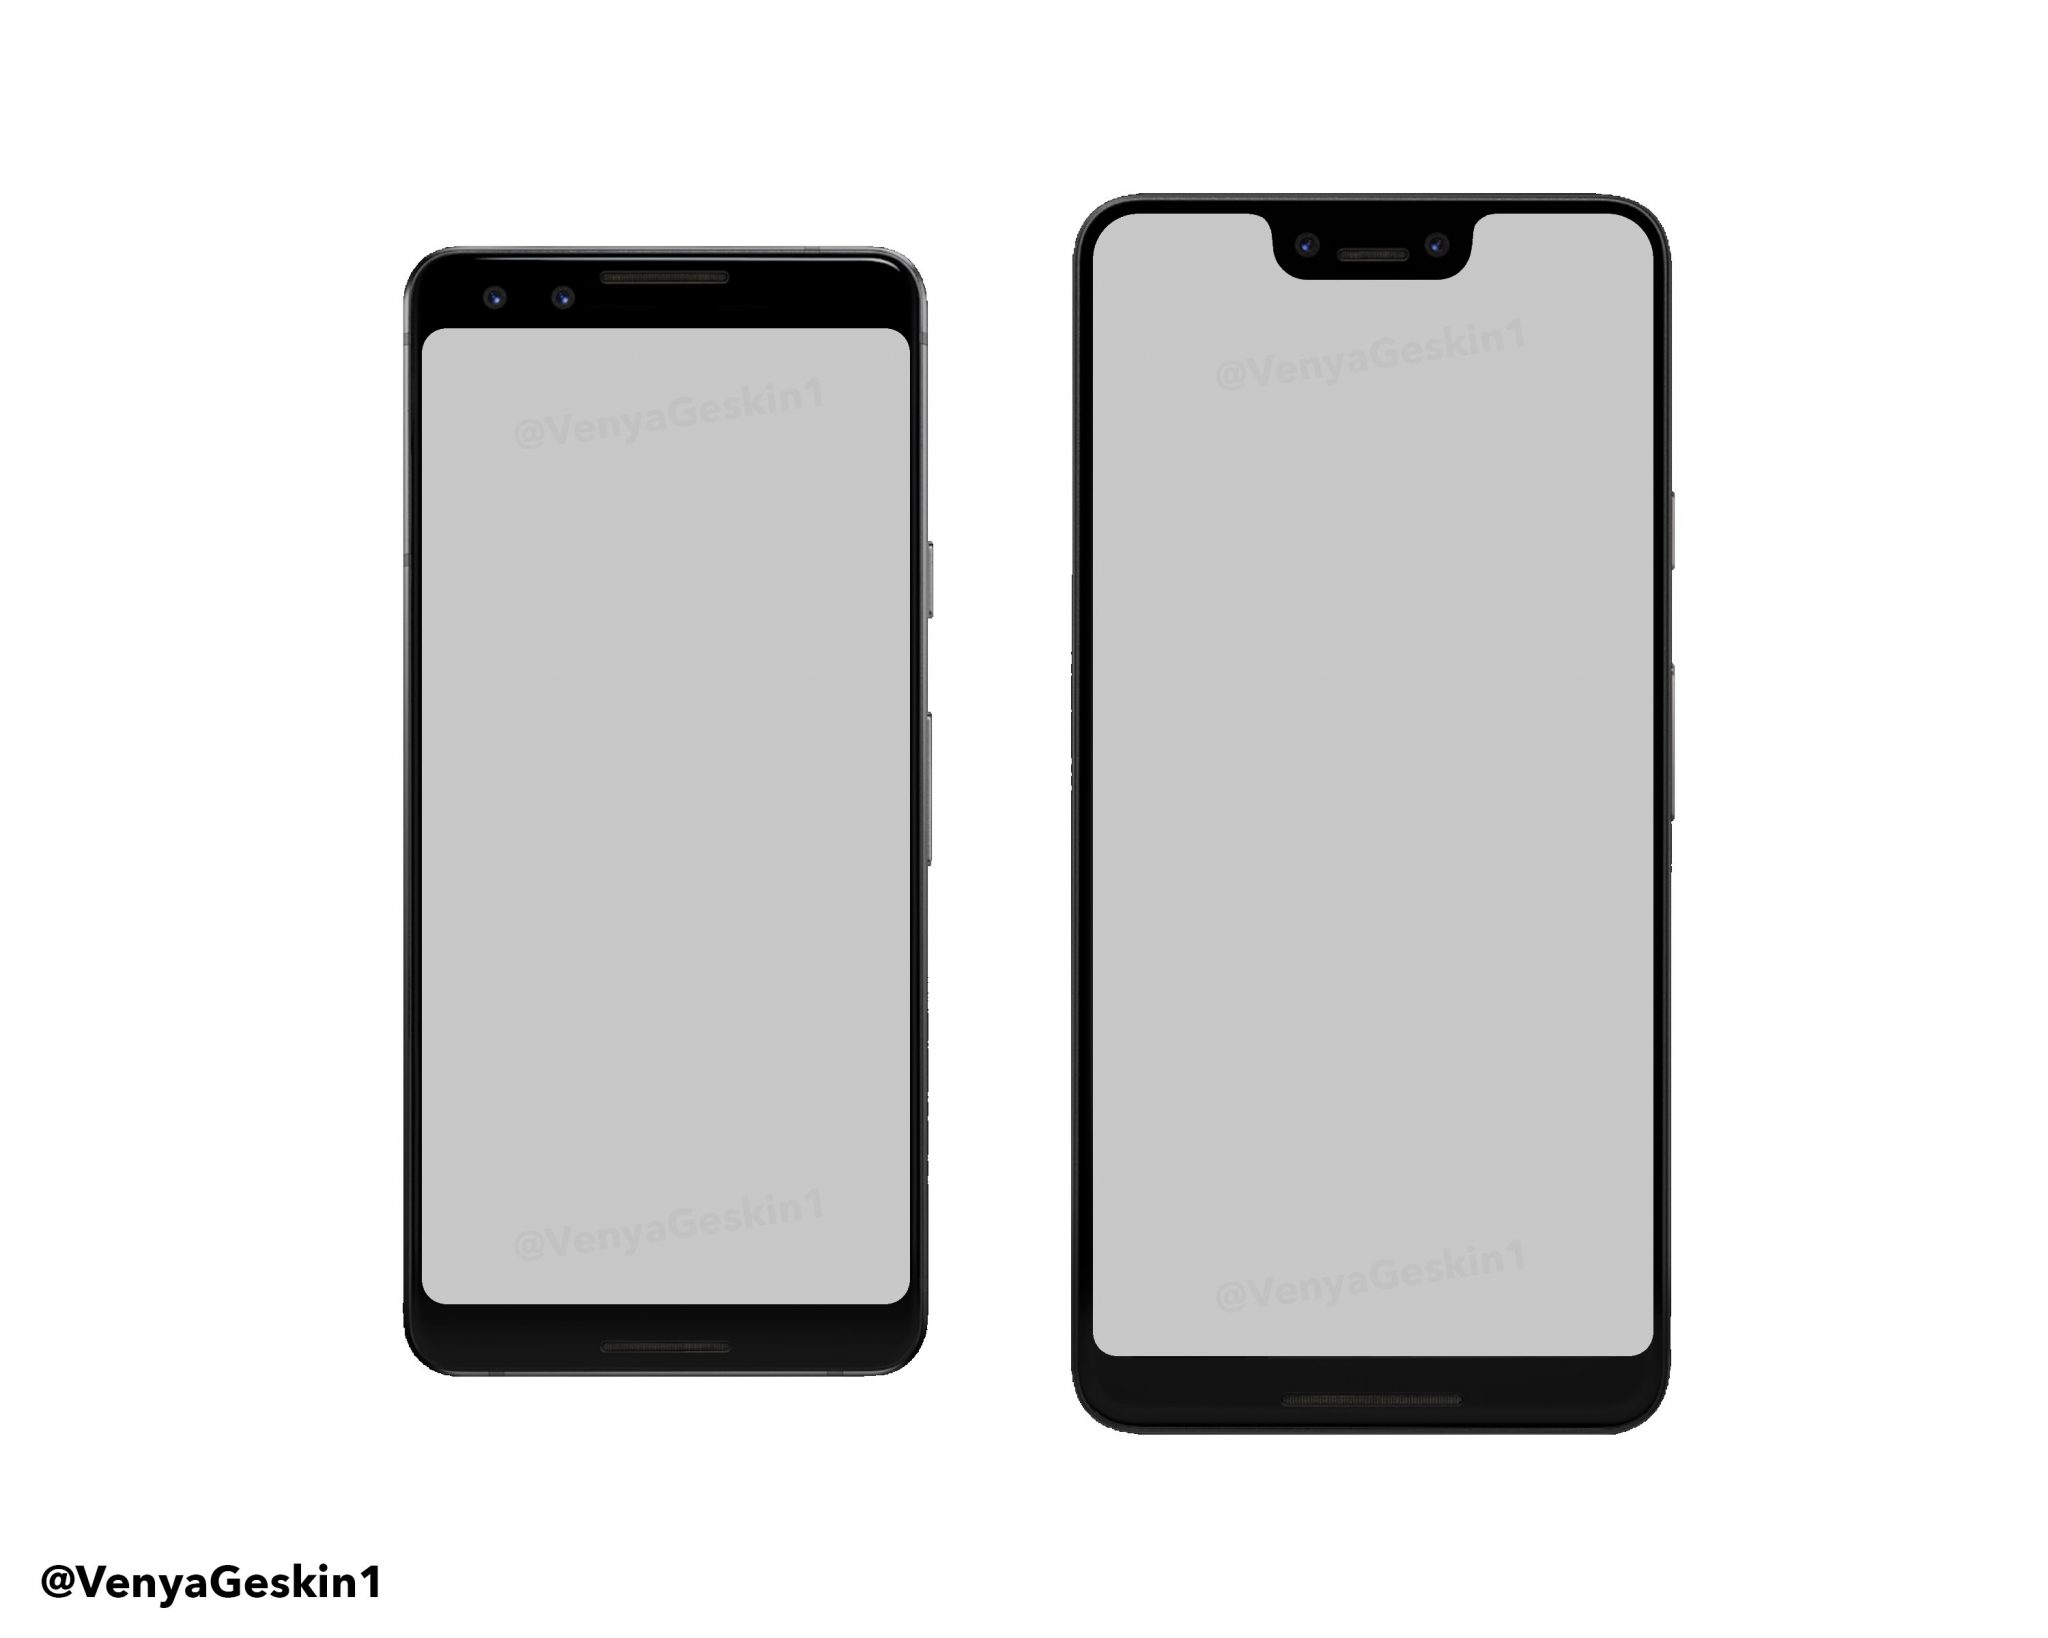 pixel 3 leaks shows the notch